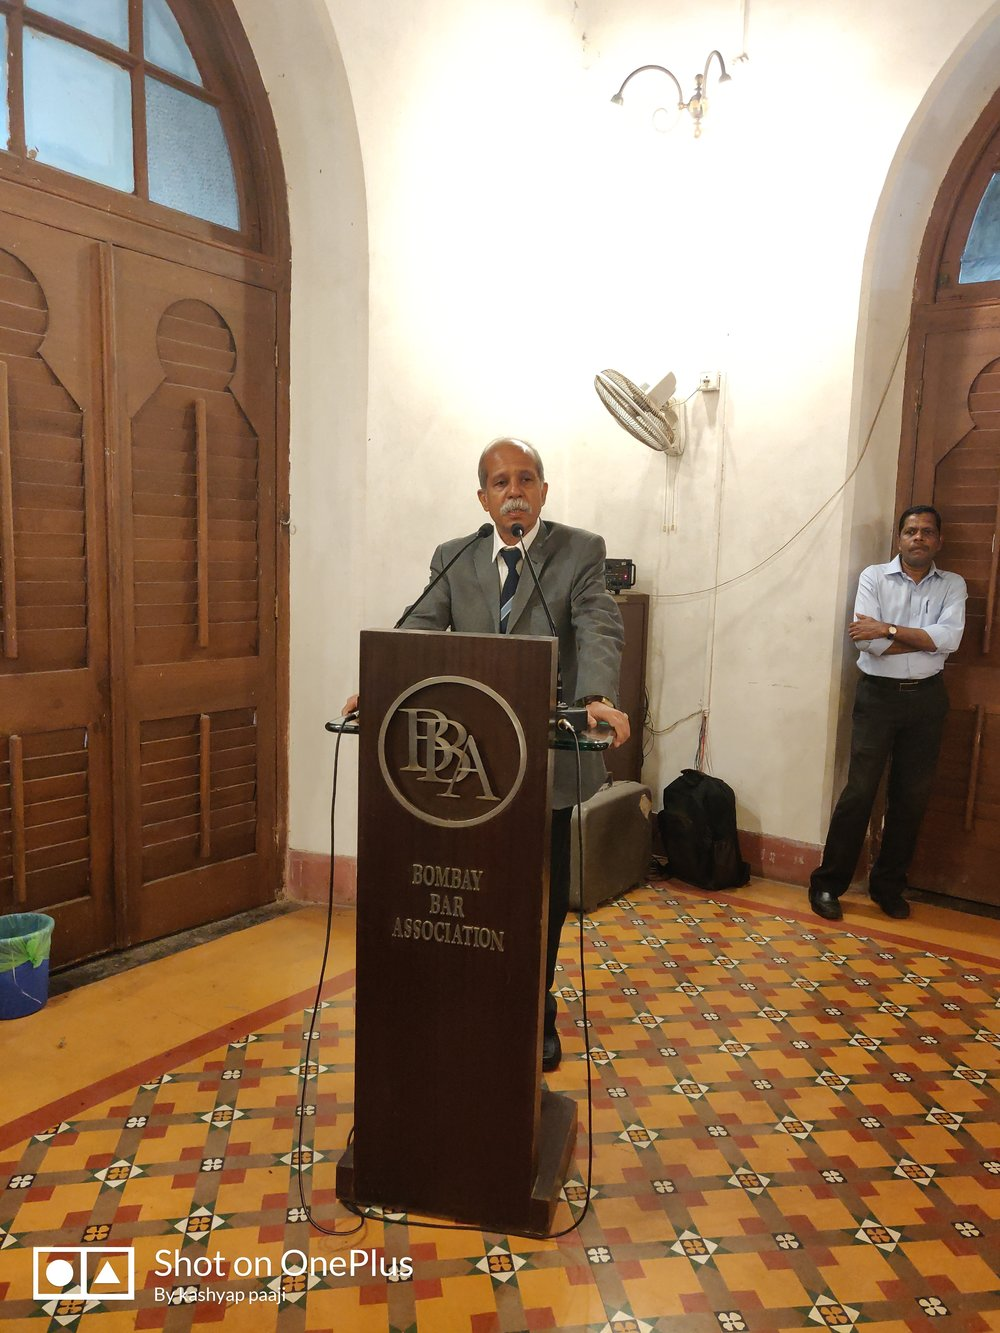 22/11/2018 FELICITATION TEA PARTY for Hon'ble Mr. Justice Akil A. Kureshi and Hon'ble Mr. Justice Indrajit Mahanty on their appointment as Judges of the Bombay High Court.